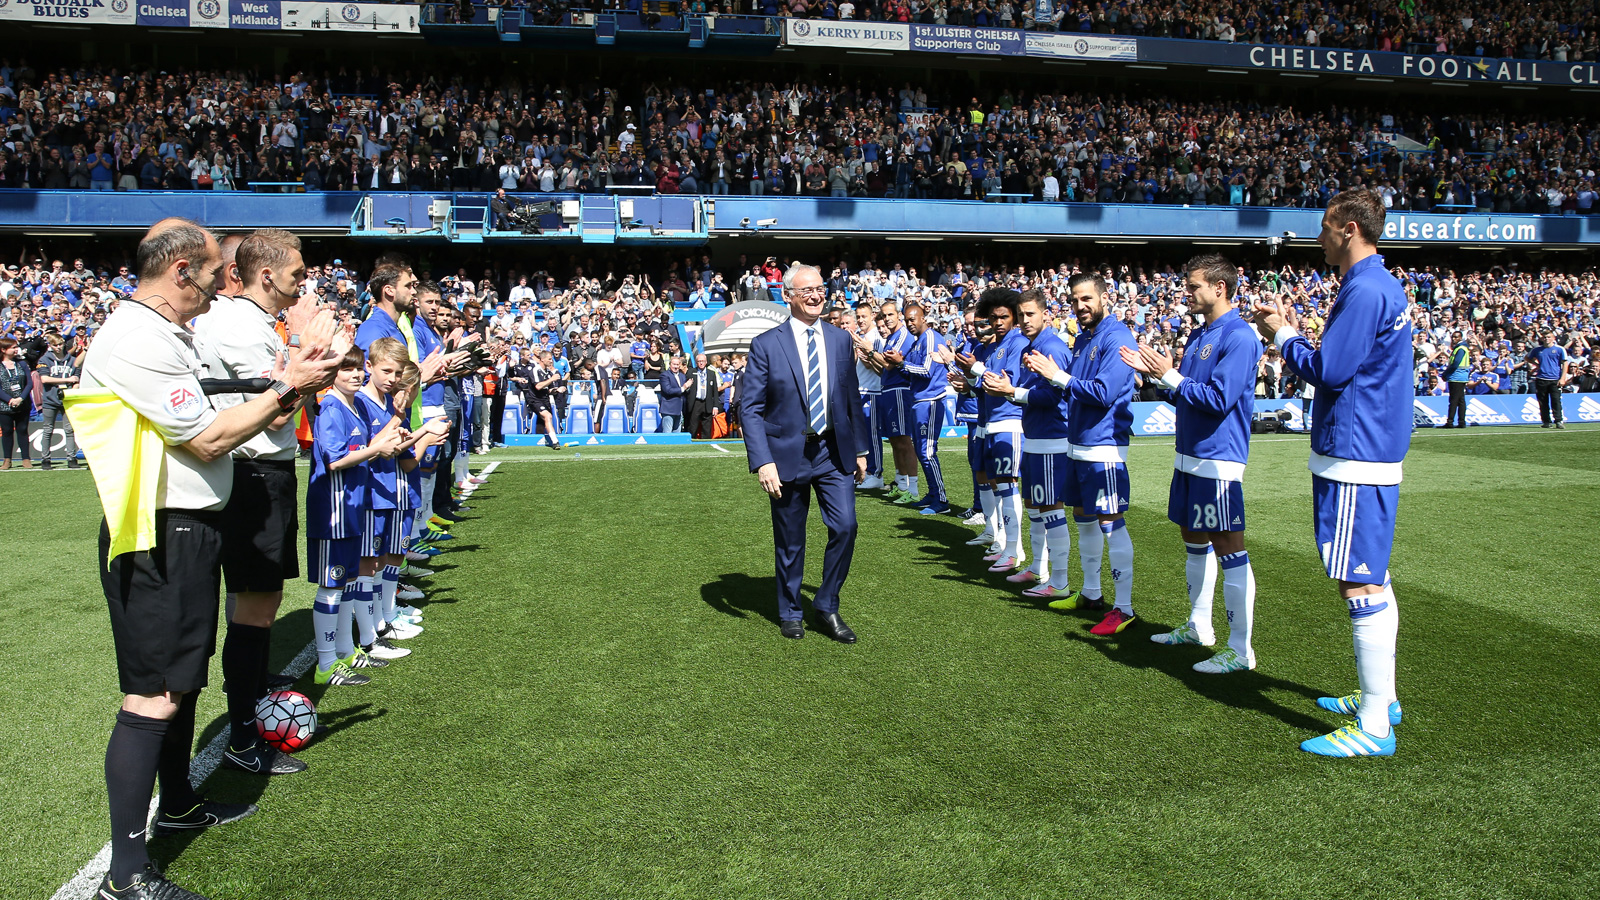 Claudio Ranieri returns to Stamford Bridge, where he was jettisoned in 2004 for Jose Mourinho, and steps through Chelsea's guard of honor, which the outgoing champions provided for Leicester City.